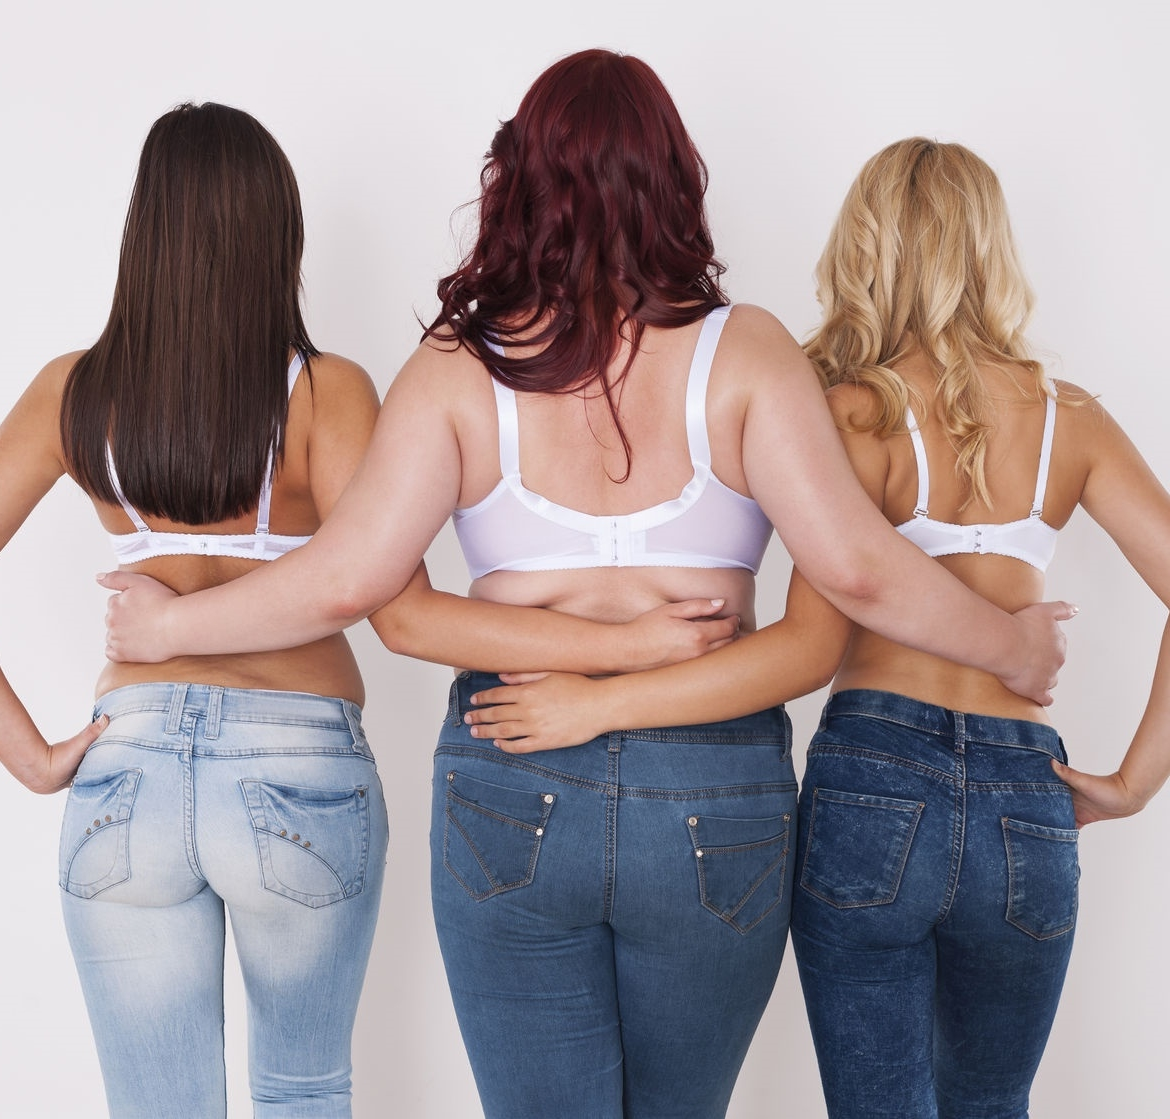 three woman showing their back to the camera wearing only their bra and jeans